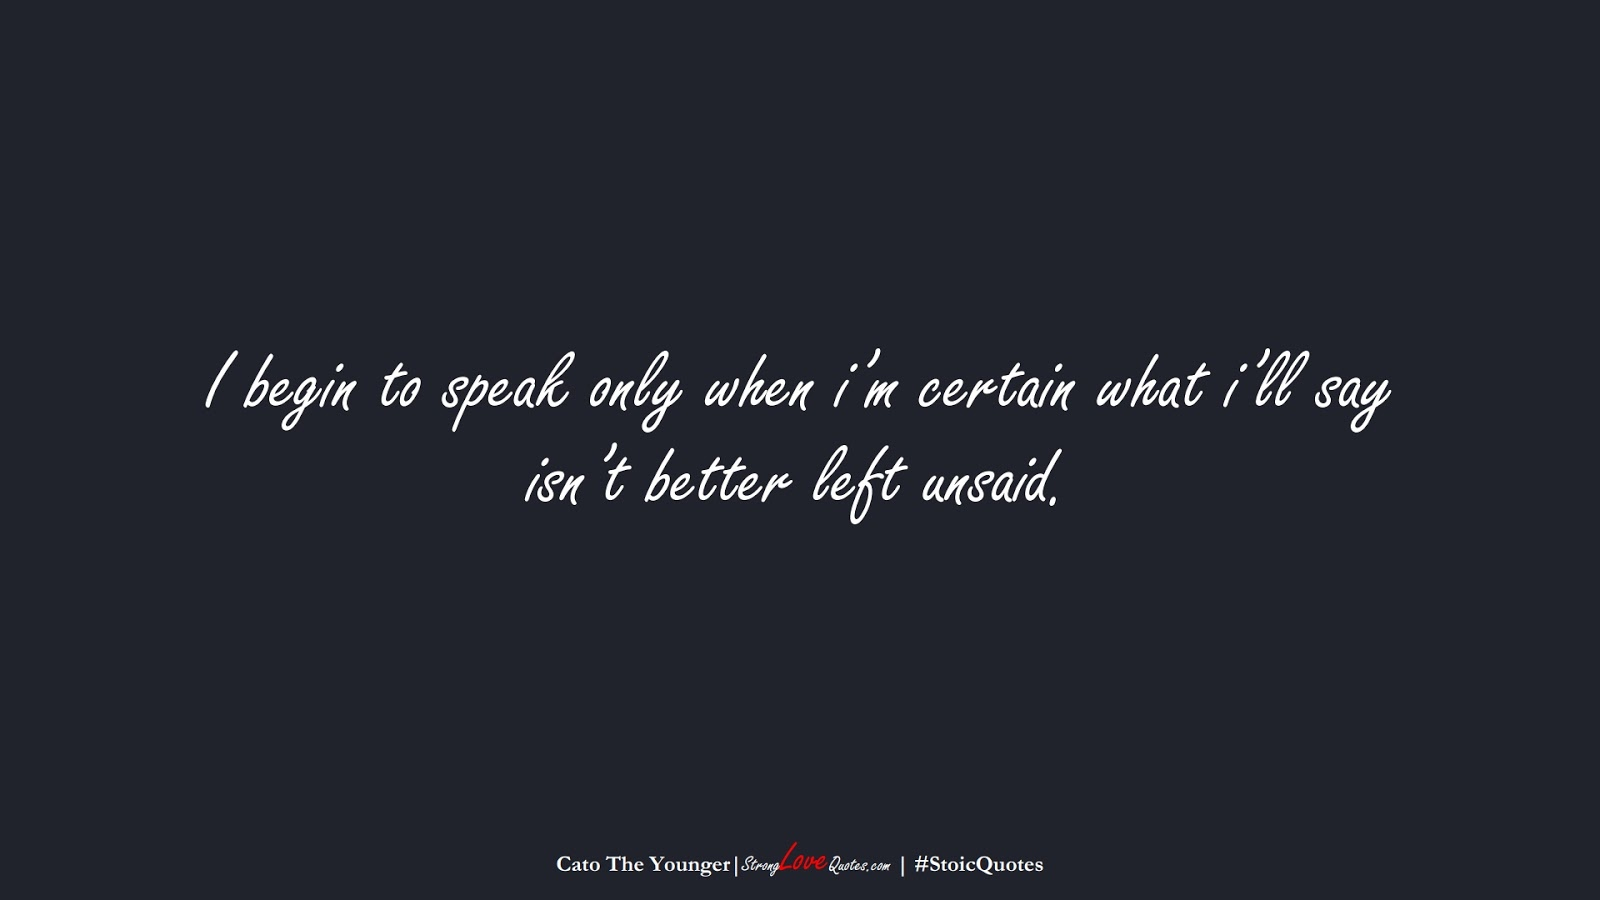 I begin to speak only when i'm certain what i'll say isn't better left unsaid. (Cato The Younger);  #StoicQuotes